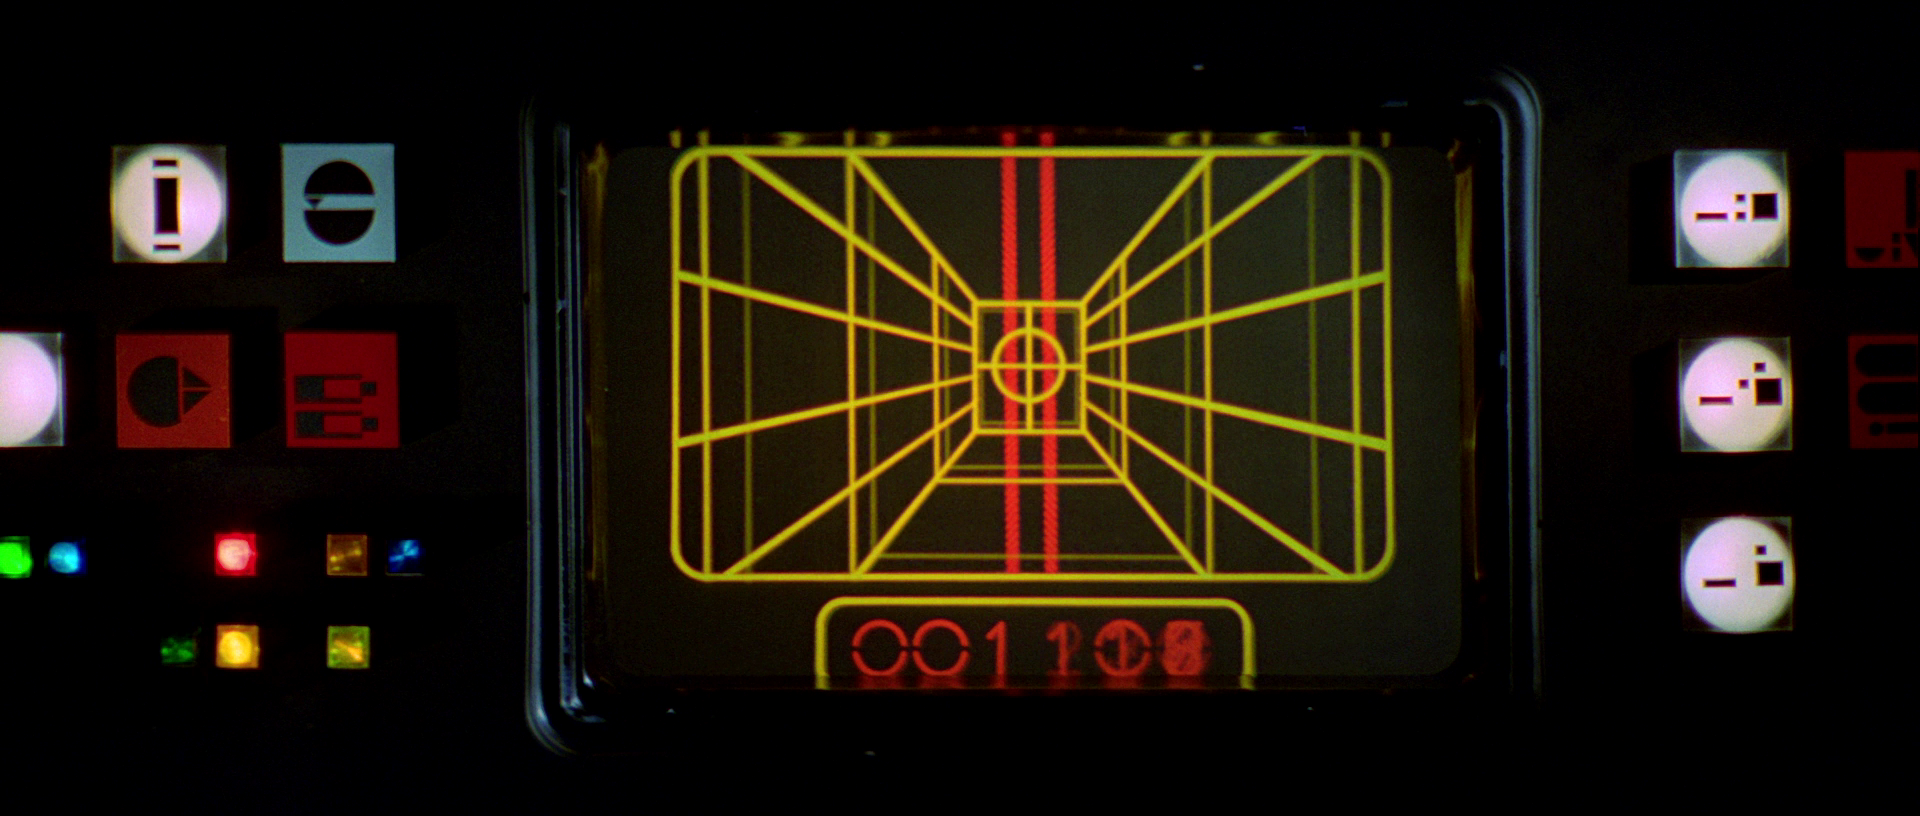 The heads up display of an X-Wing Fighter from the Star Wars movies, courtesy of starwars.wikia.com